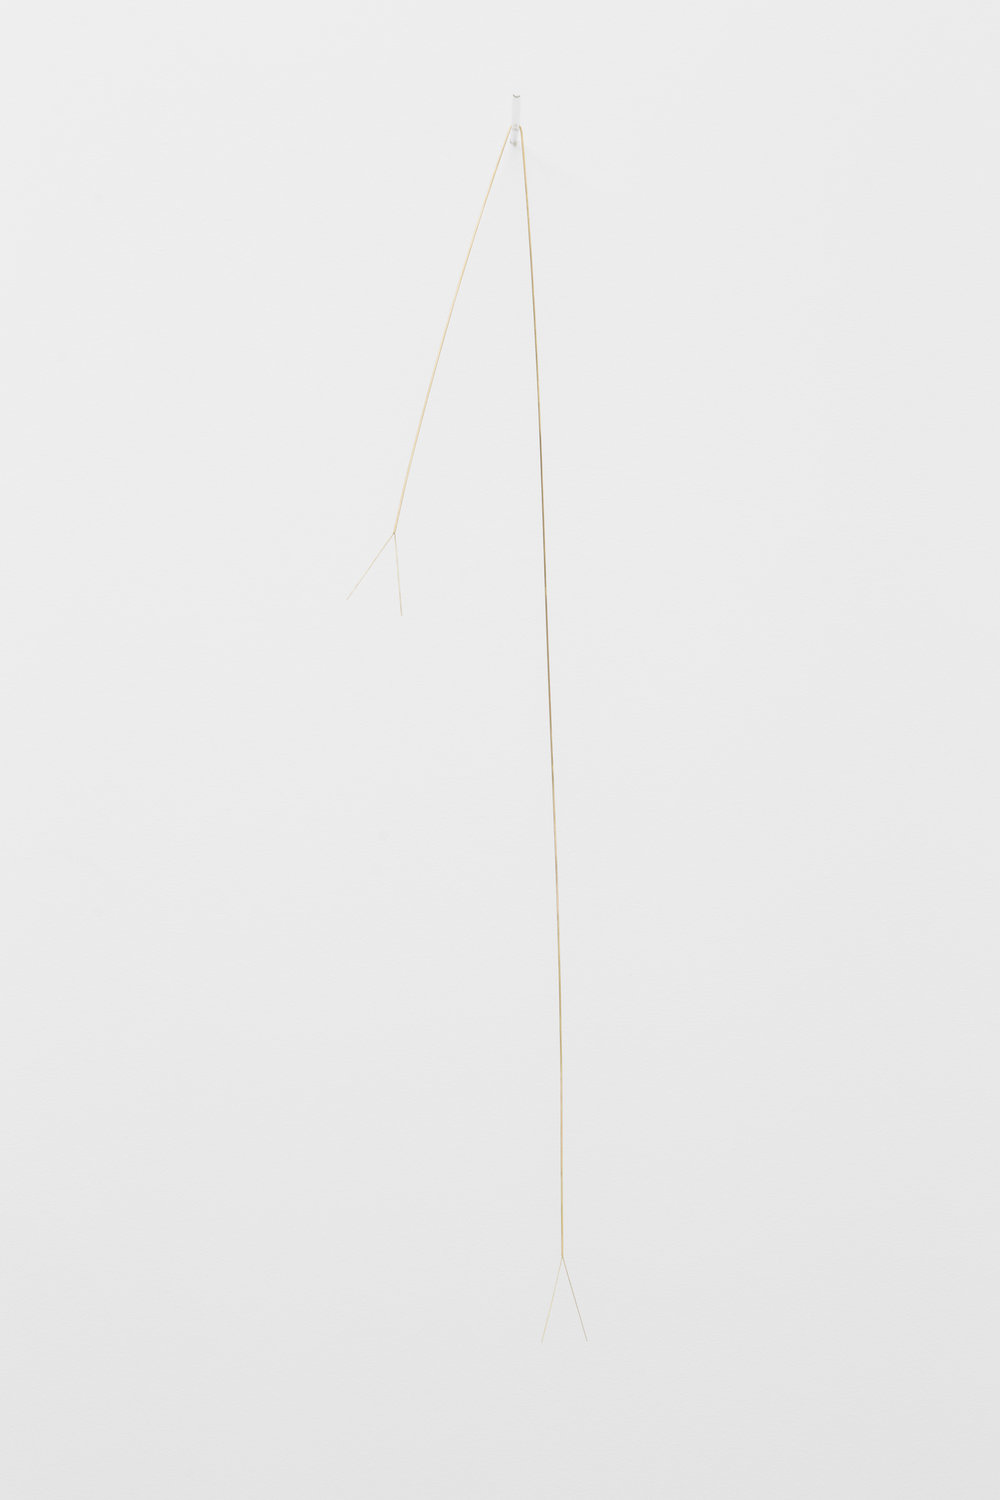 Joana Escoval  Using what you have to remember what you saw (III)  2018 Gold, glass Approx., 70 x 12 x 14 cm Unique